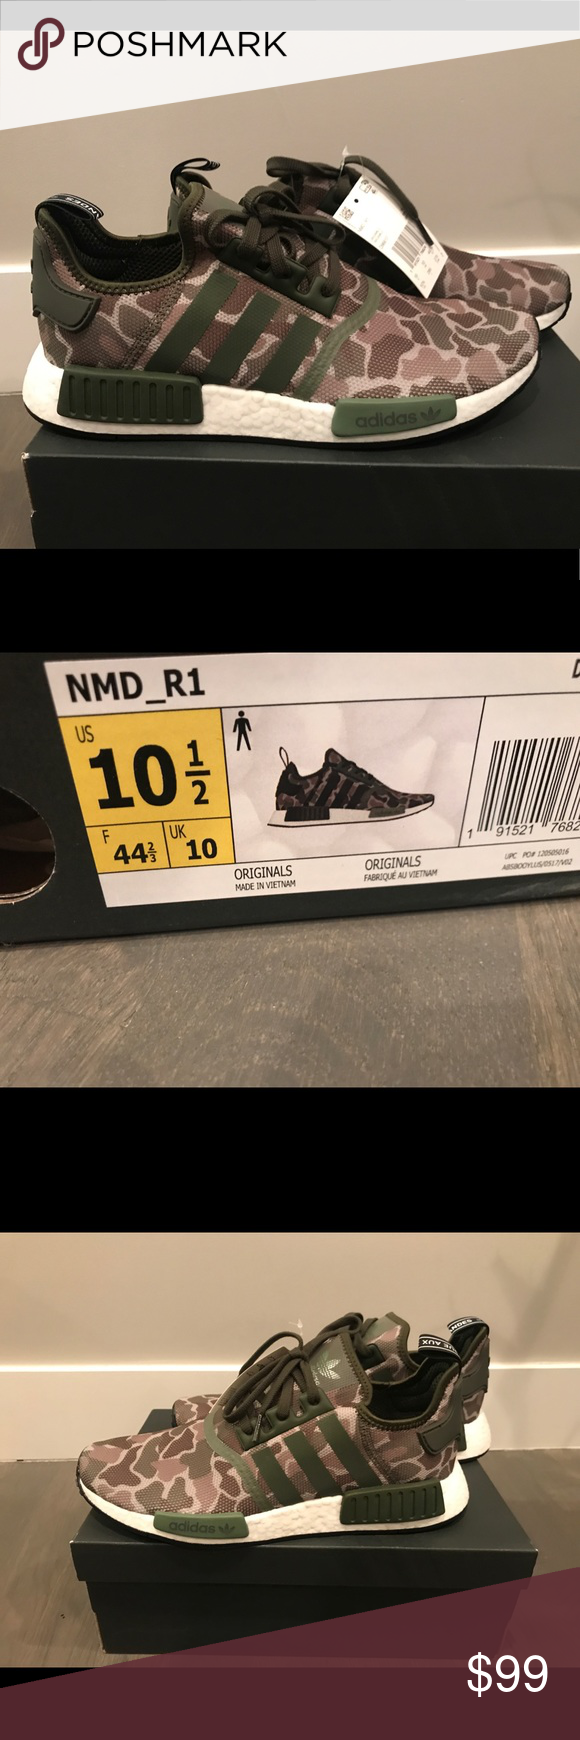 reputable site df523 120c1 Brand new Adidas NMD R1 Camo D96617 New ADIDAS NMD R1 Men s Shoes Style   D96617 MSRP   130 Brand New Original Box Included (Box Condition Not  Guaranteed) ...